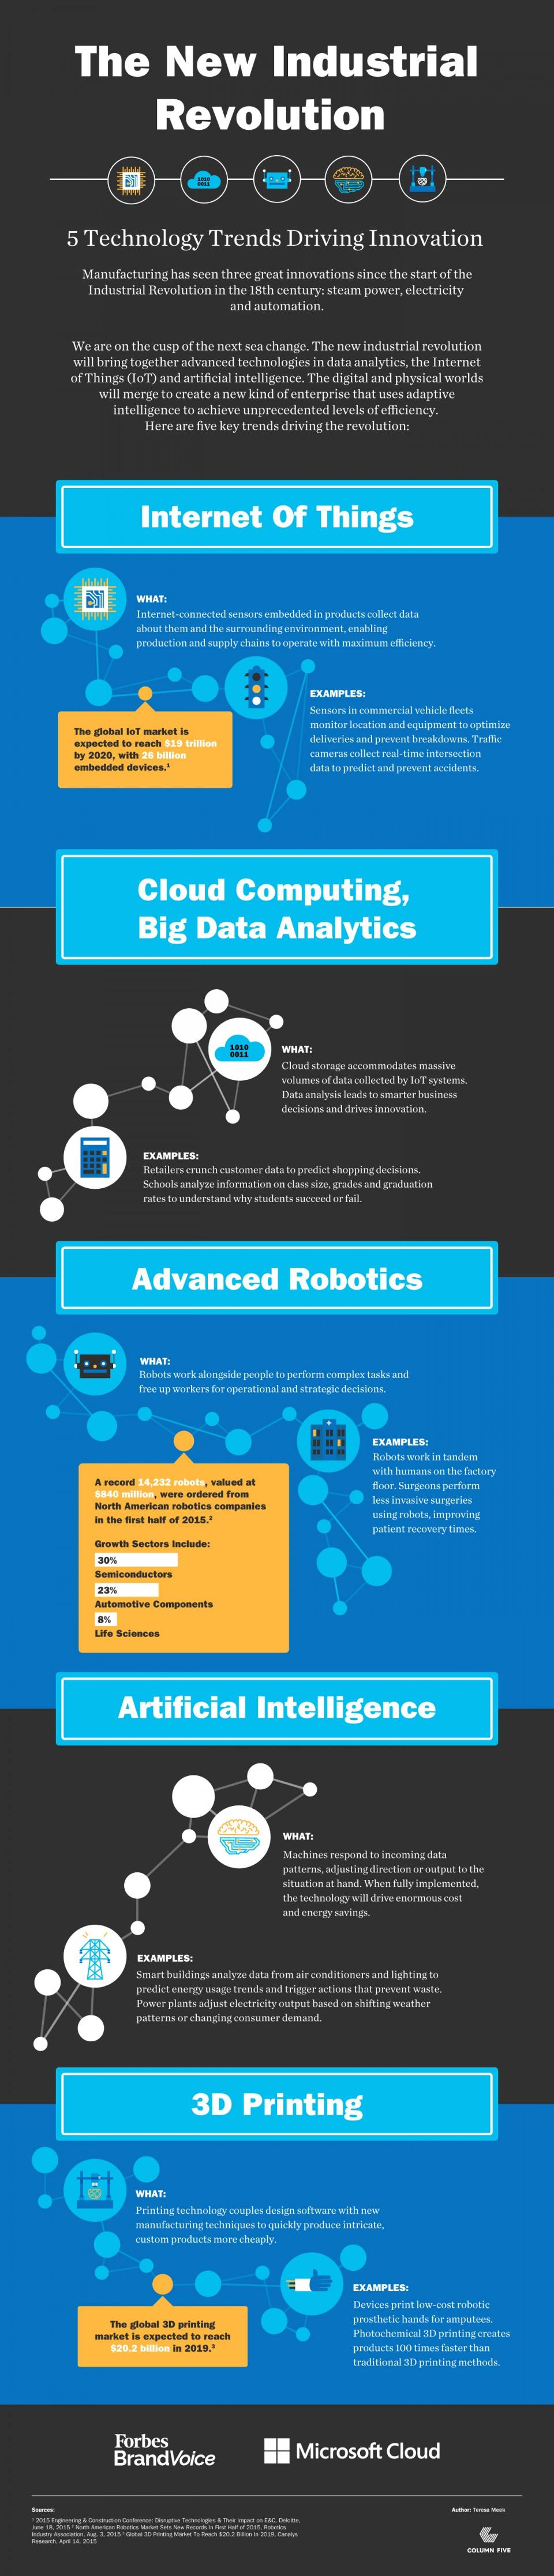 Microsoft Cloudvoice The New Industrial Revolution 5 Technology Trends Driving Innovation Infographic Industrial Revolution Technology Trends Industrial Engineering